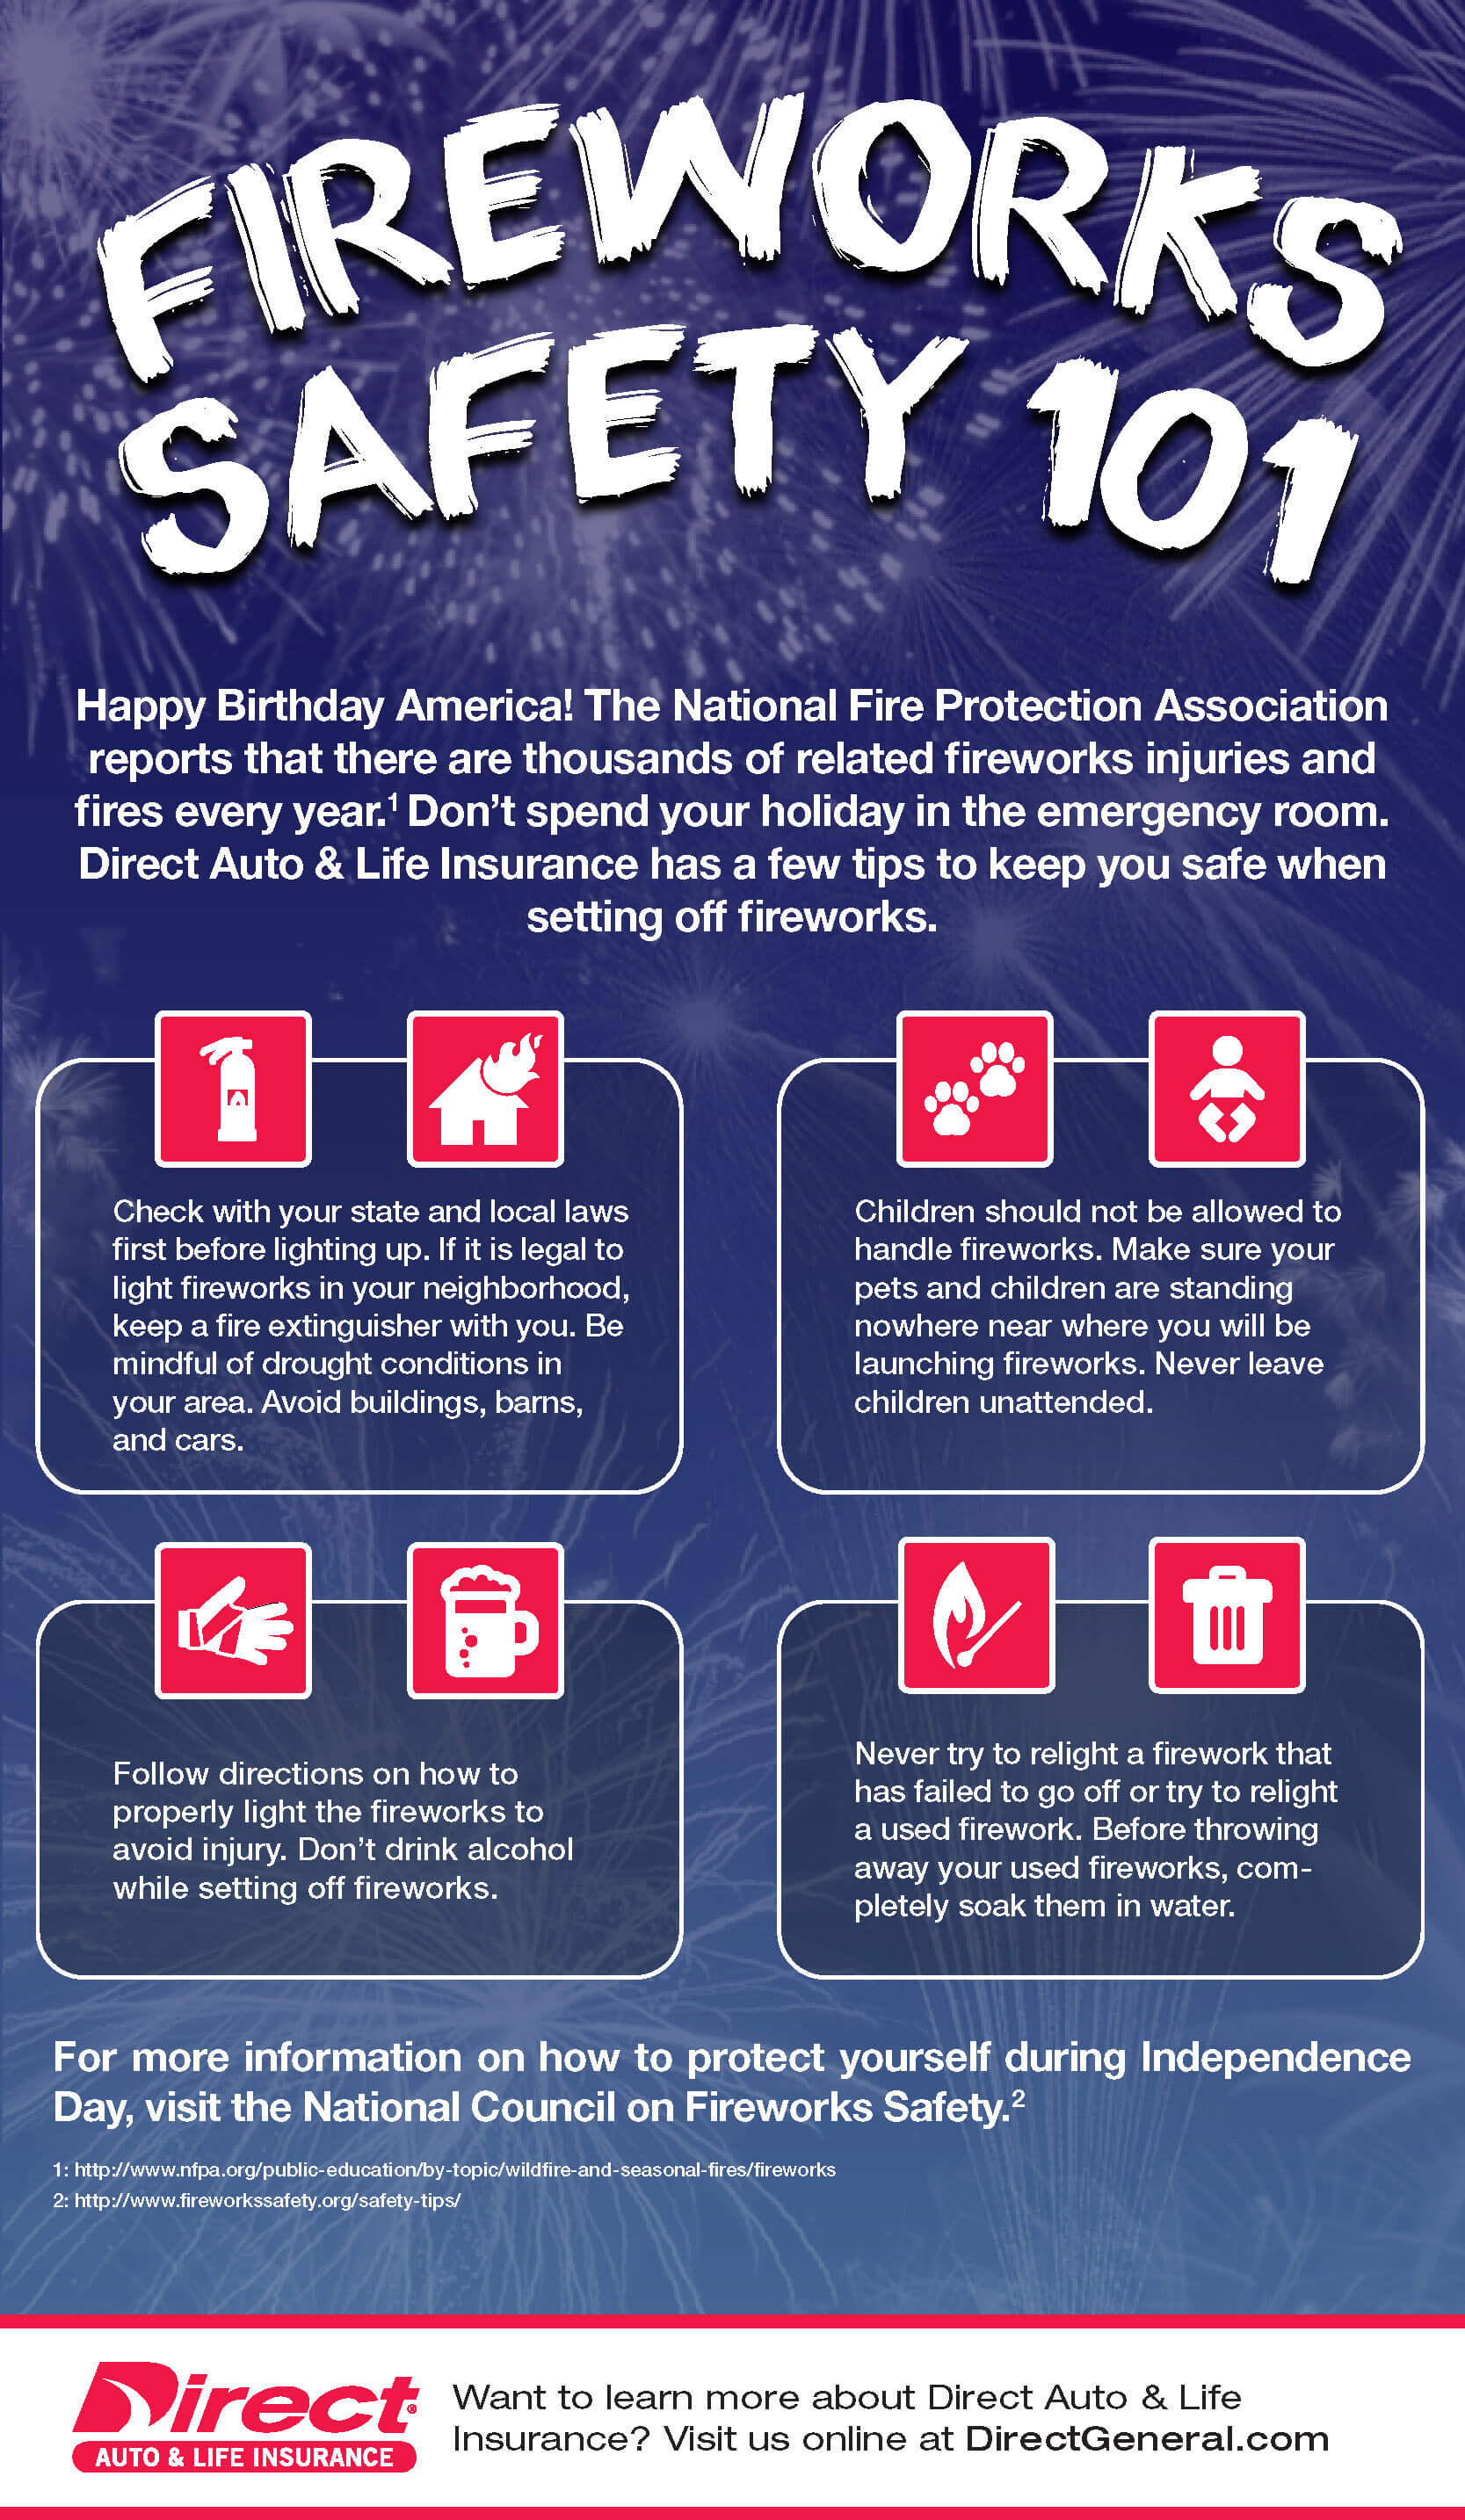 Stay safe setting off fireworks with these easy tips